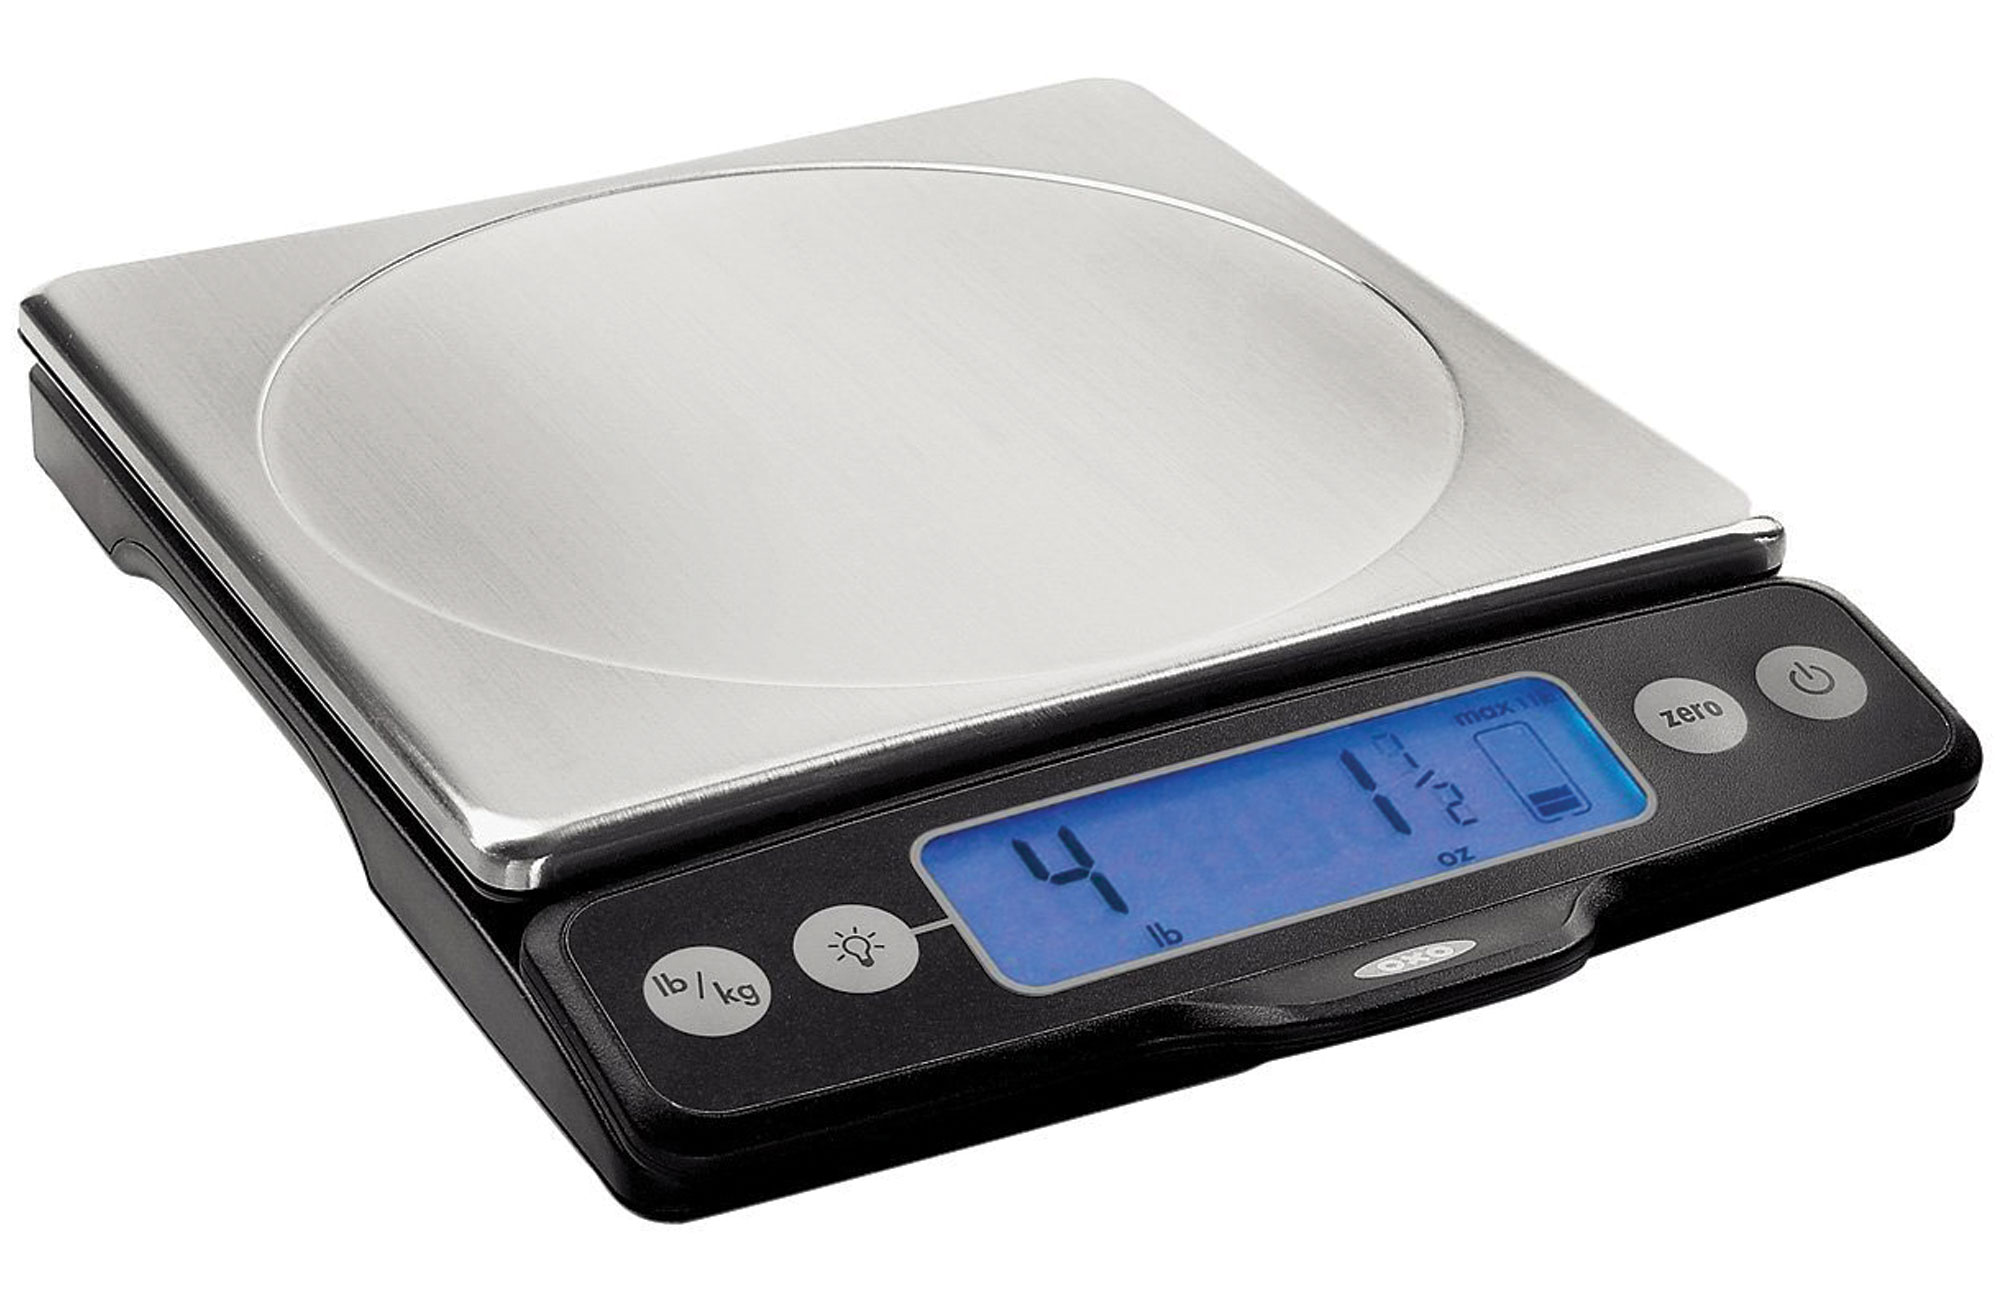 Oxo Good Grips Digital Kitchen Scale With Pull Out Display